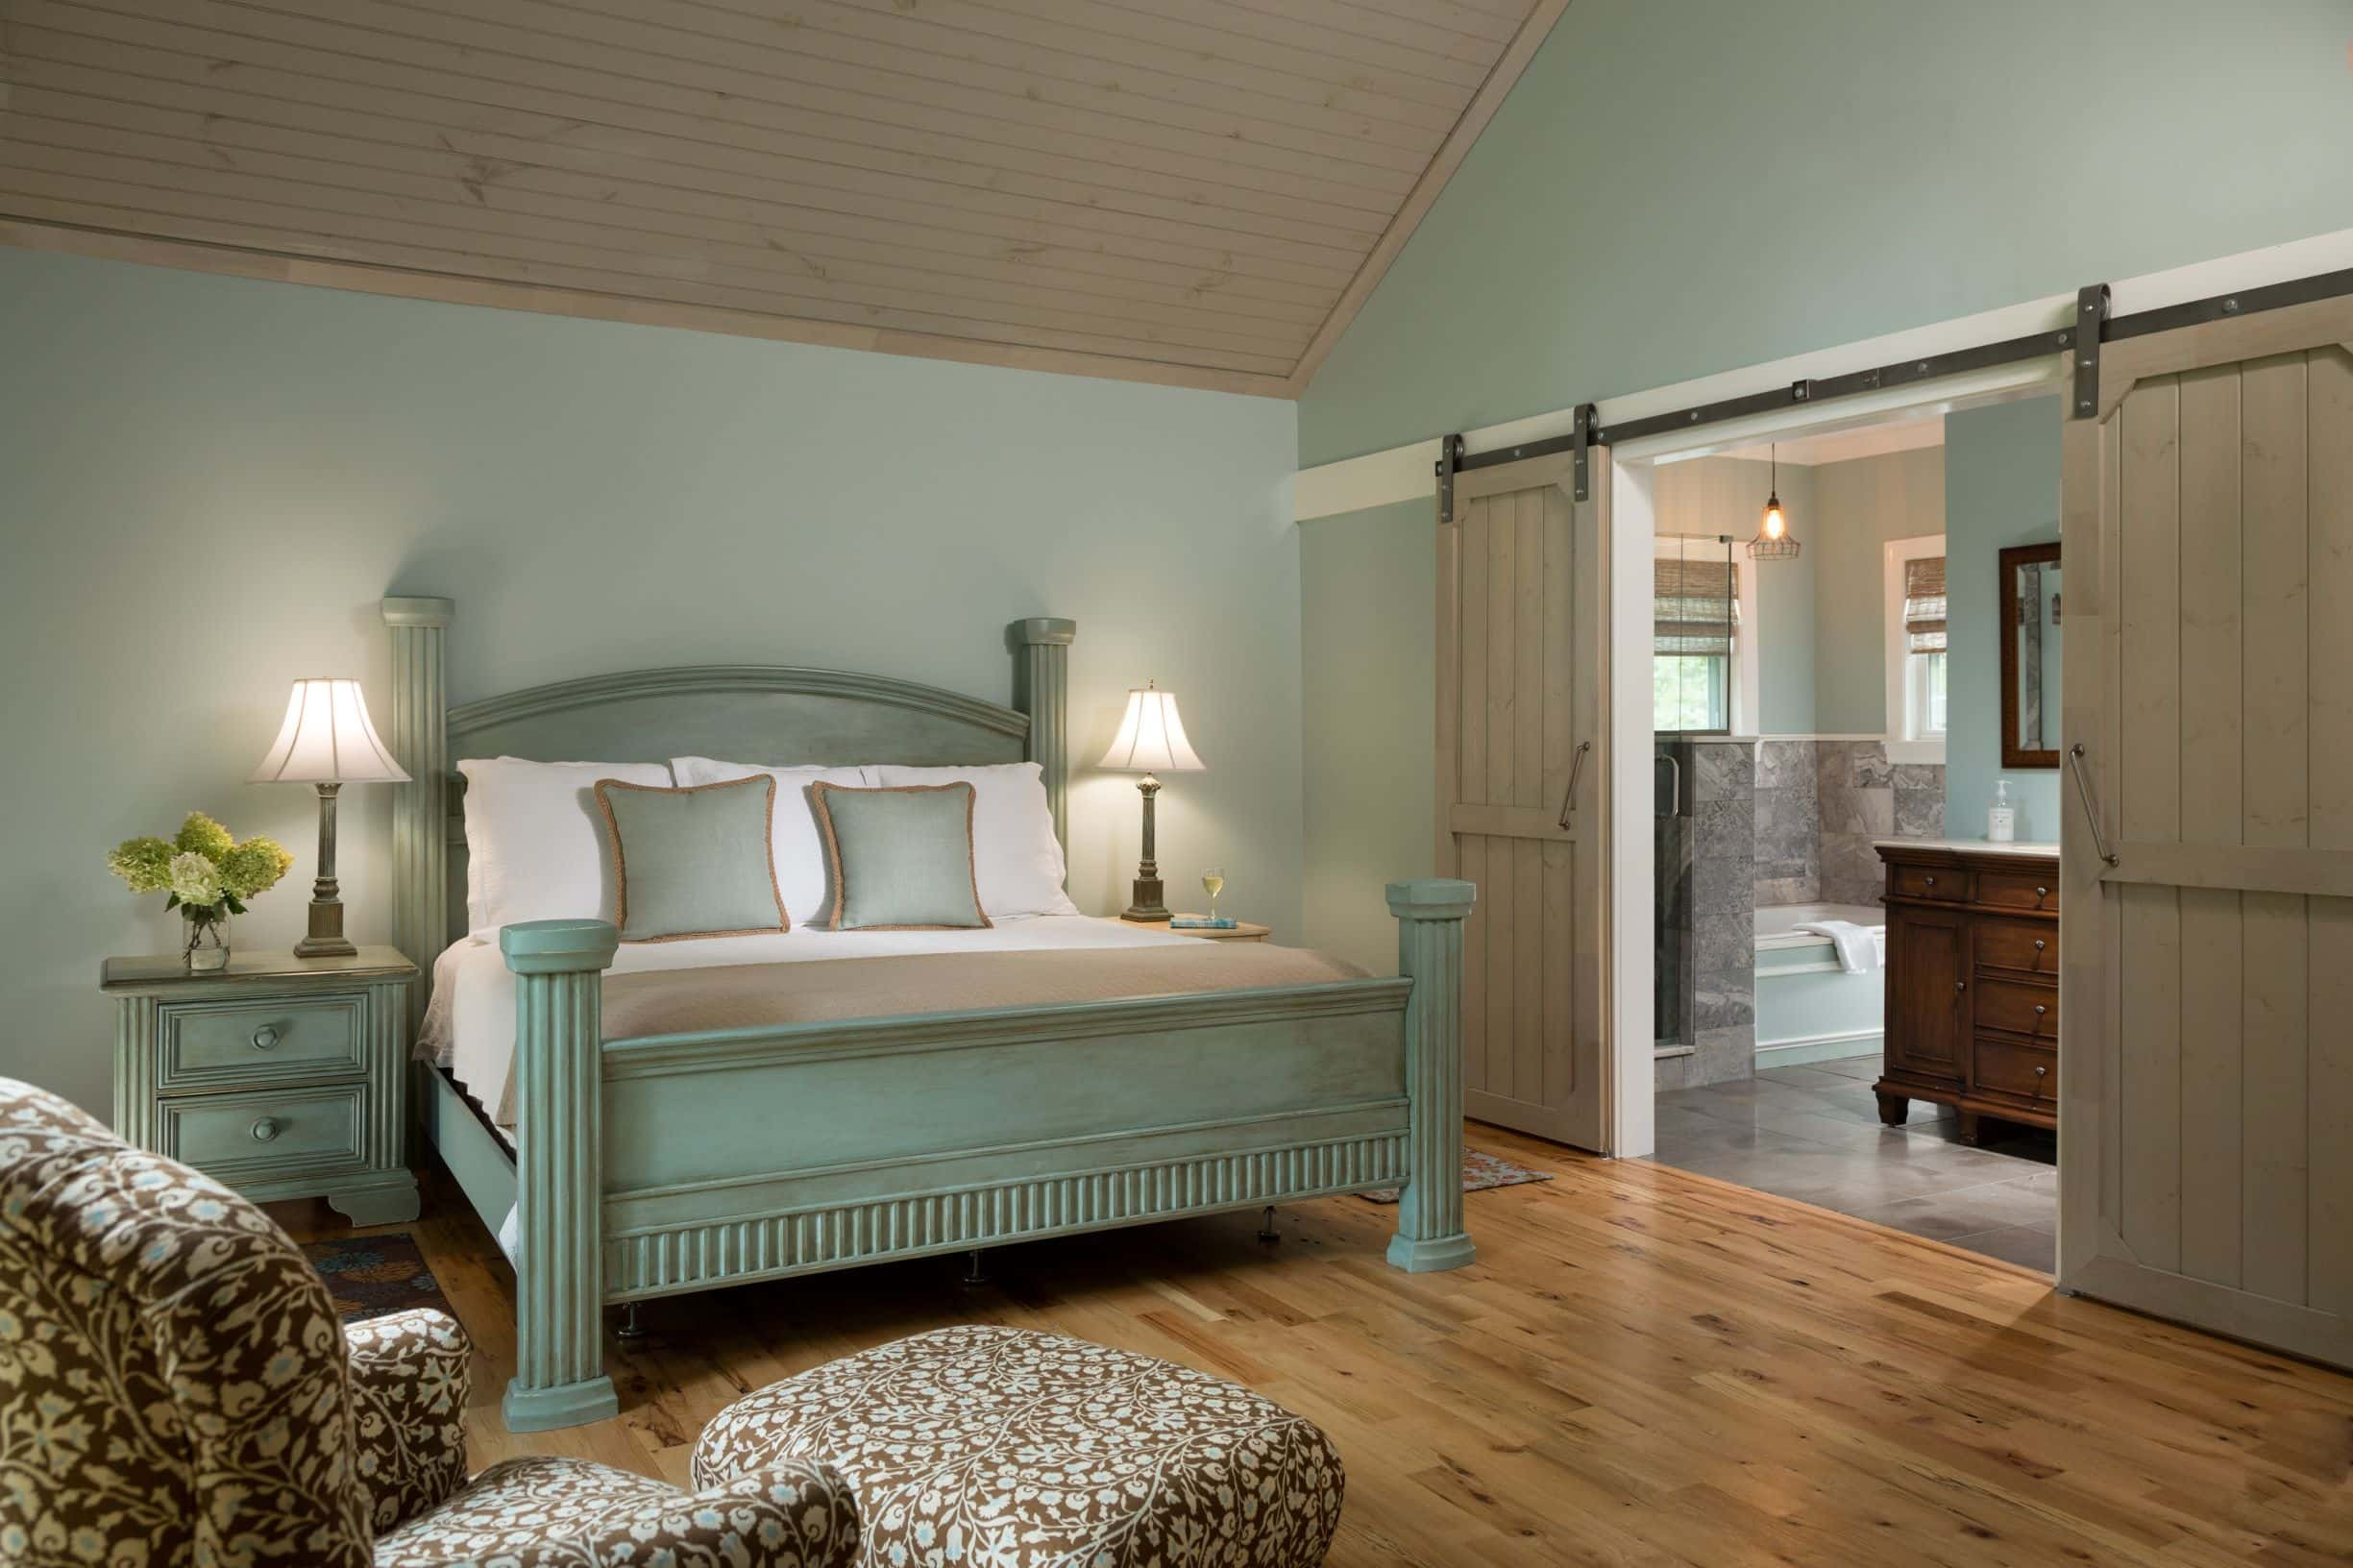 Return to Room 22 at Chanticleer Inn after a long day of rock climbing in Chattanooga